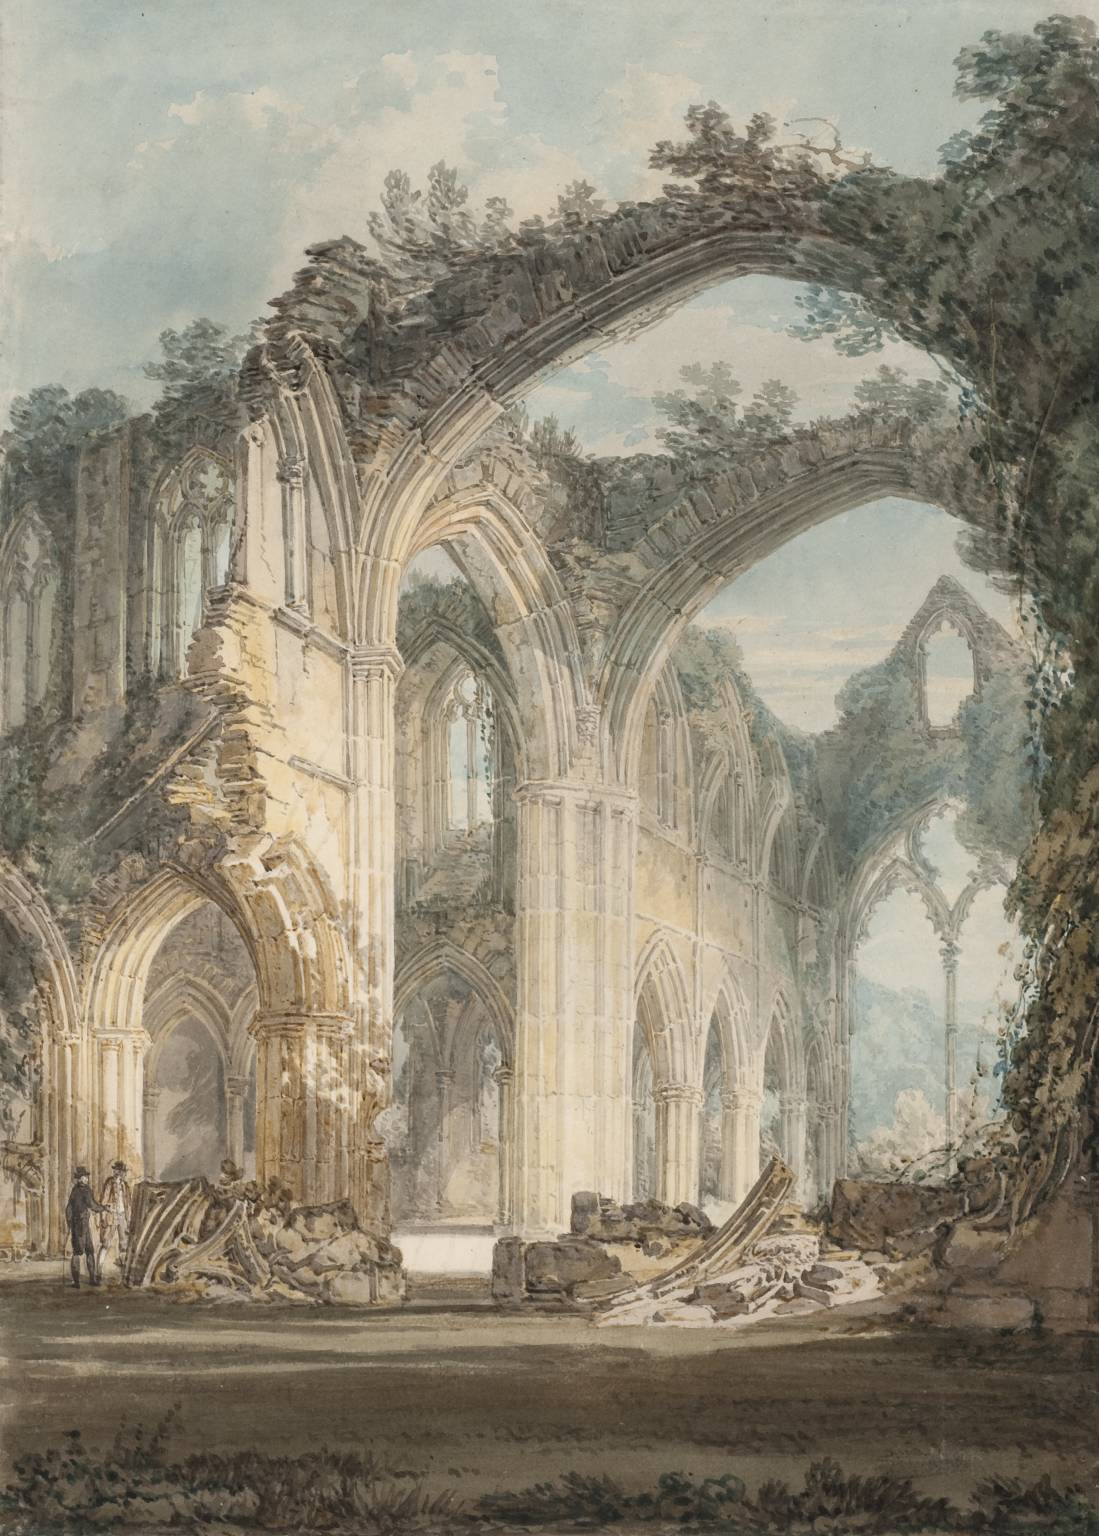 Tintern Abbey, The Crossing and Chancel, Looking towards the East Window 1794